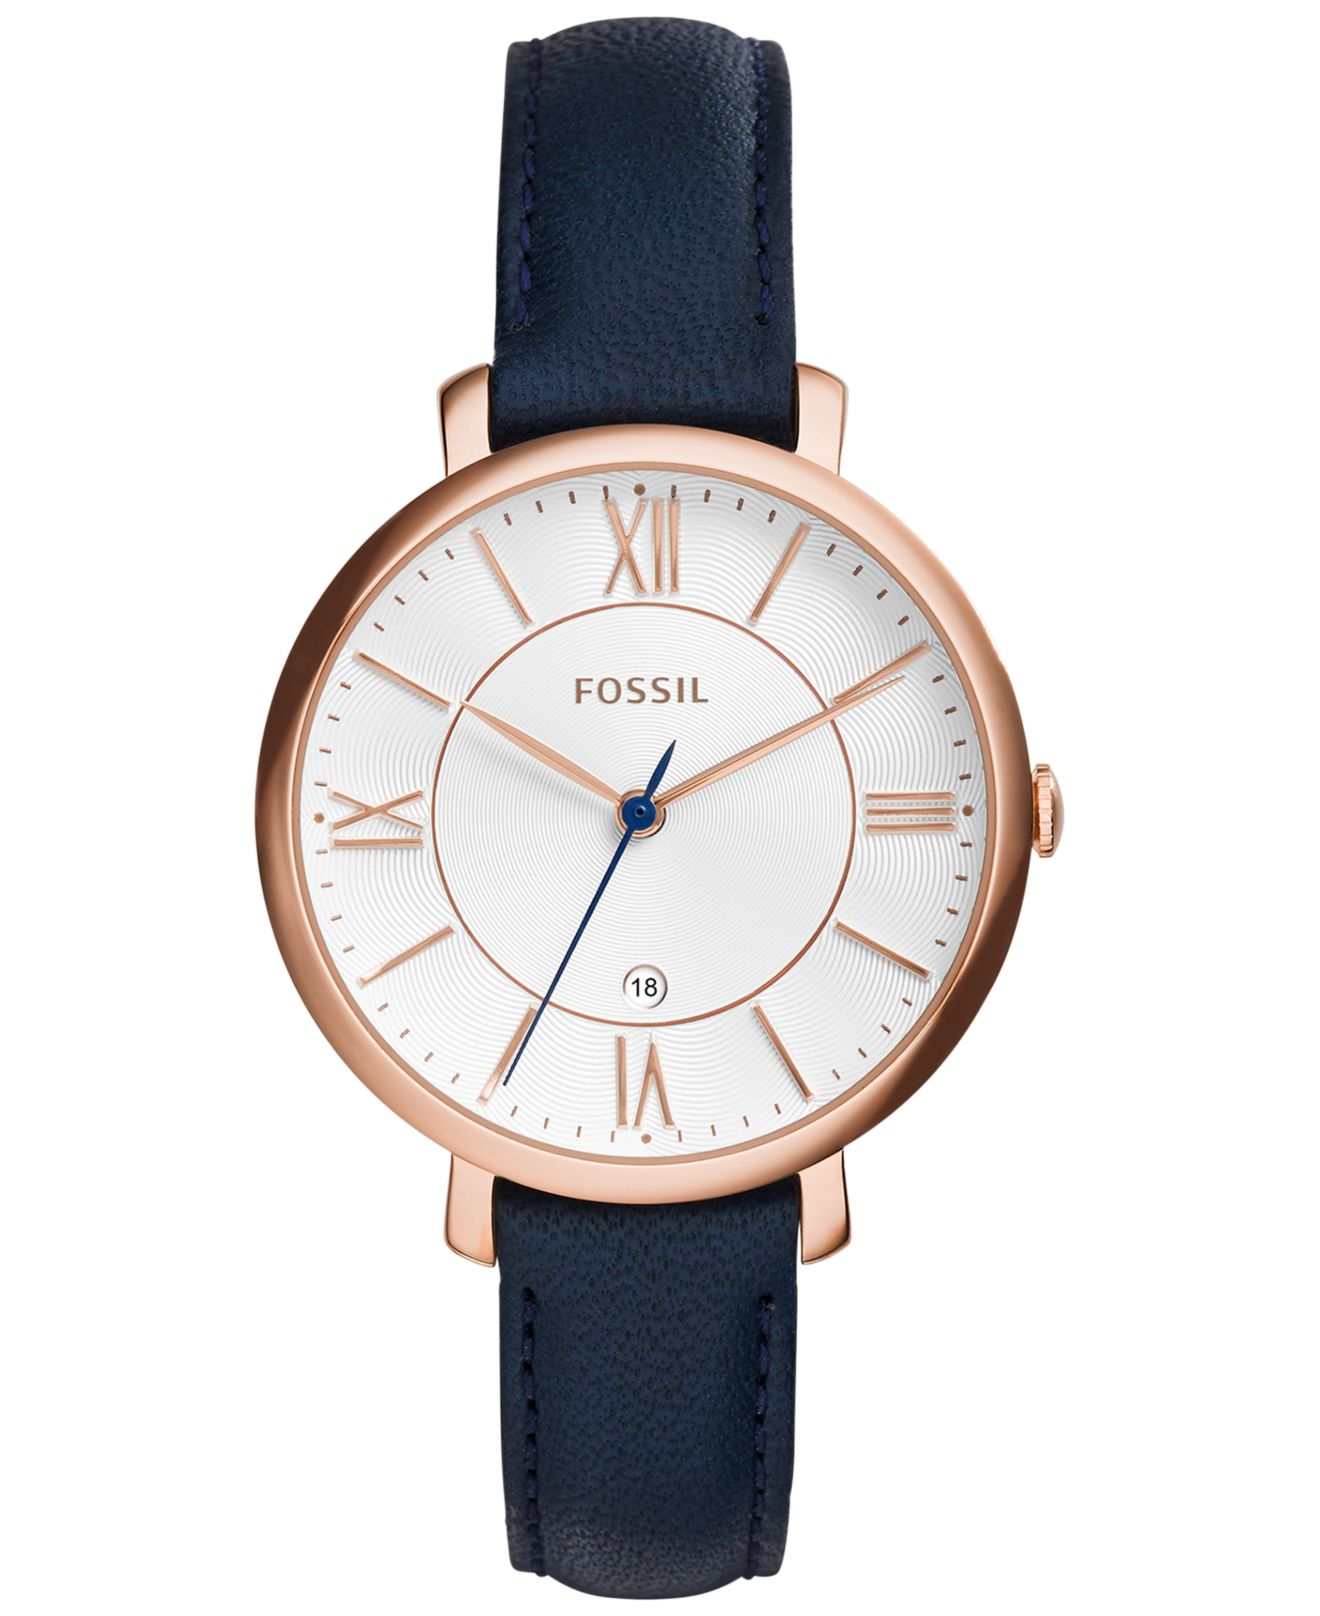 Shop Anne Klein Watches at Macy's. Buy a New Anne Klein Watch Online. Free Shipping with $99 Purchase.